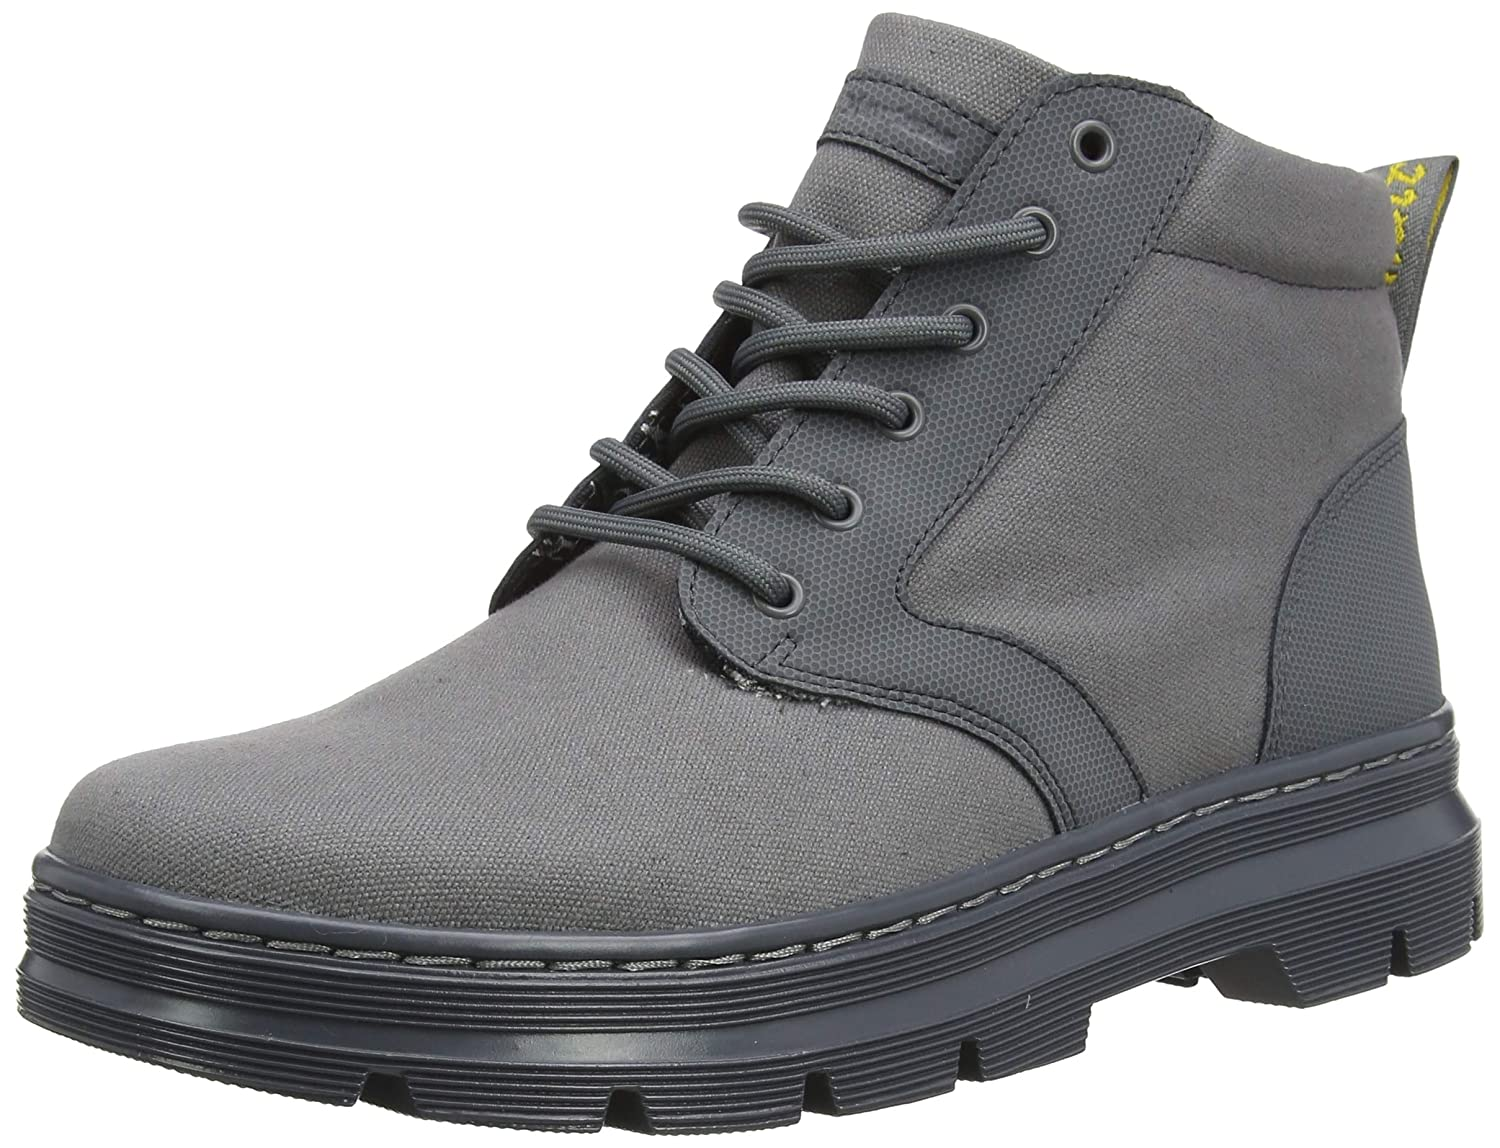 Grey Broder & Grey 10 Oz Canvas Dr. Martens Unisex Adults' Bonny Ii Classic Boots